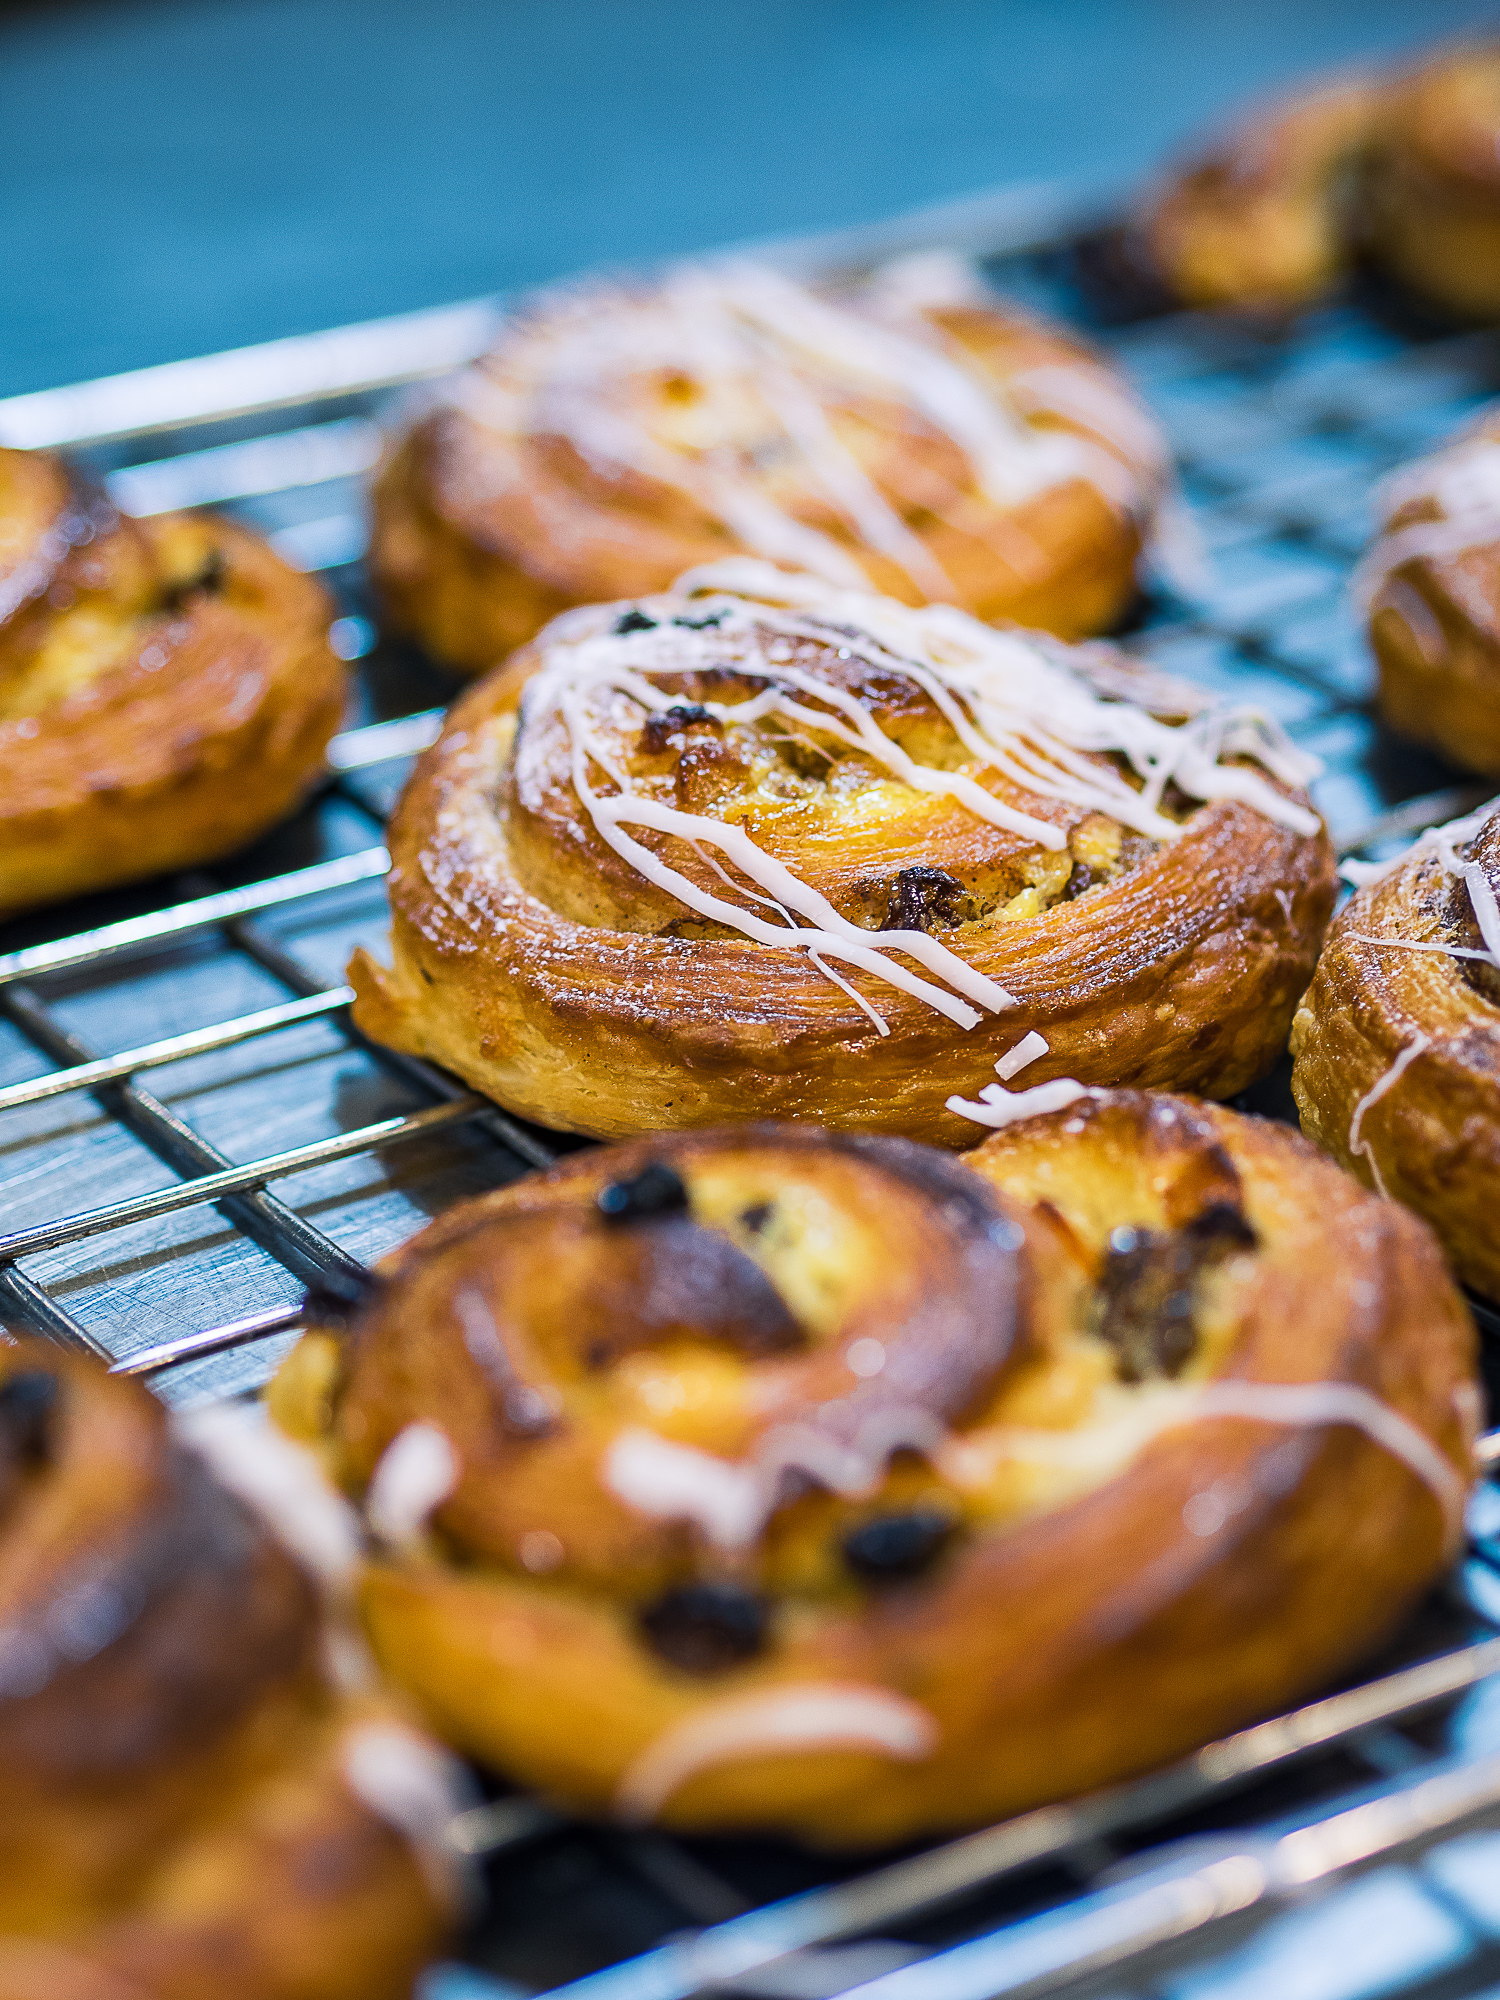 MORE THAN JUST A BAKERY   The Heart & Soul of Suffolk Park   FIND US